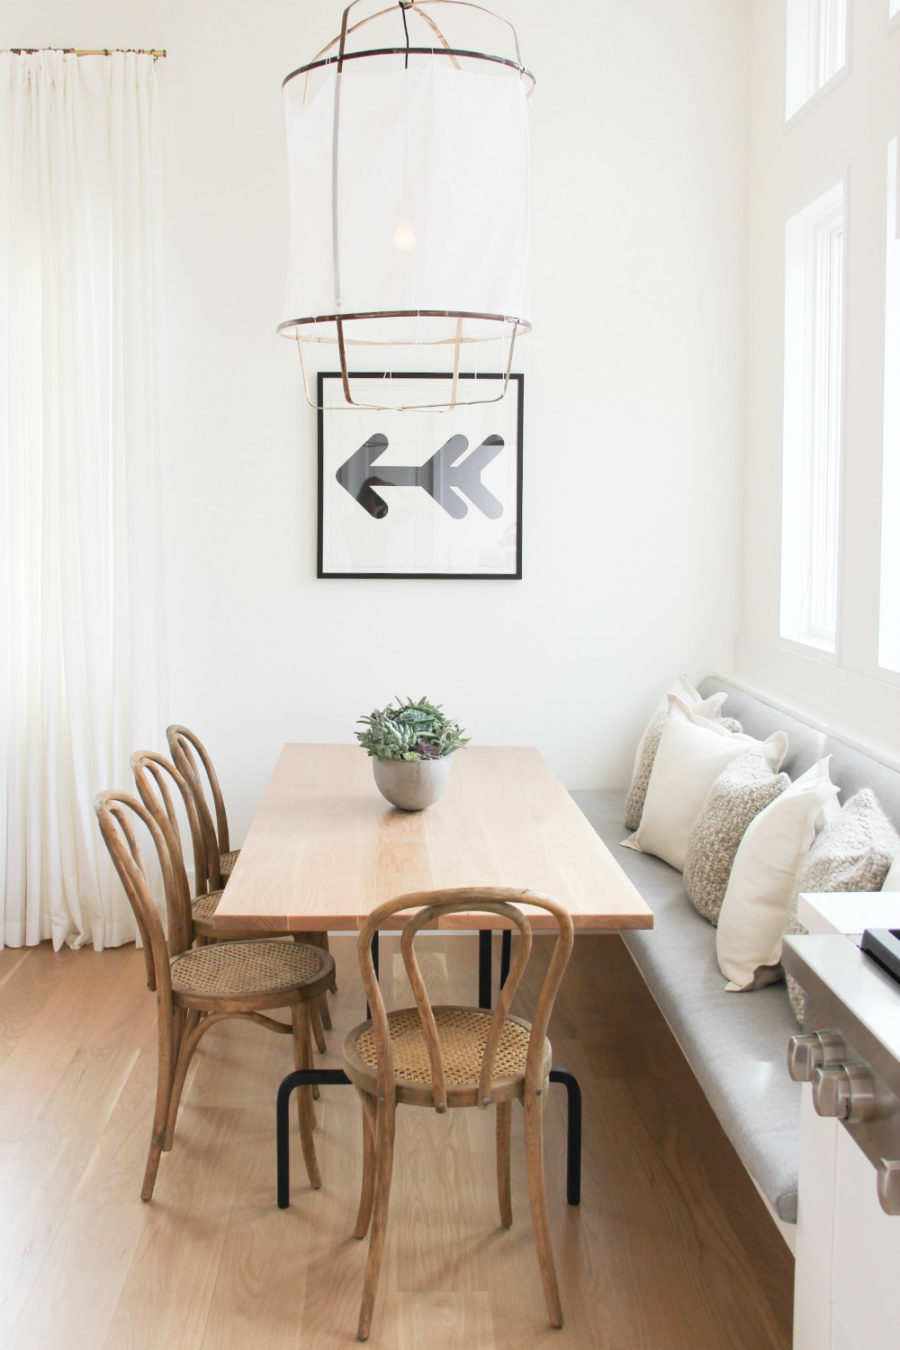 Dining area with a bench